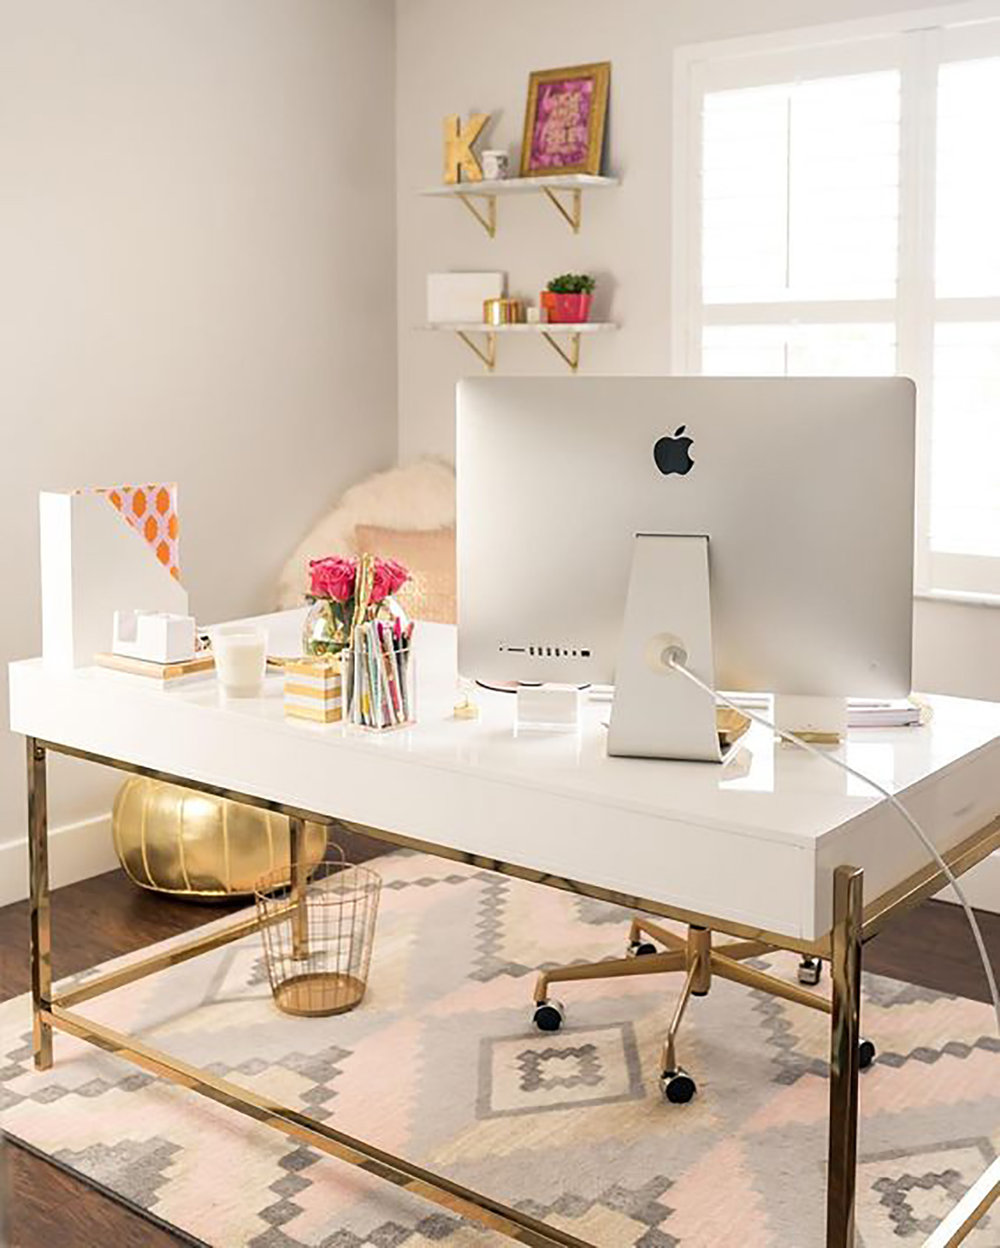 4 Tips for Running a Blog When You Have a Full Time Job on beautybyjessika.com. Photo via fancythingsblog.com.